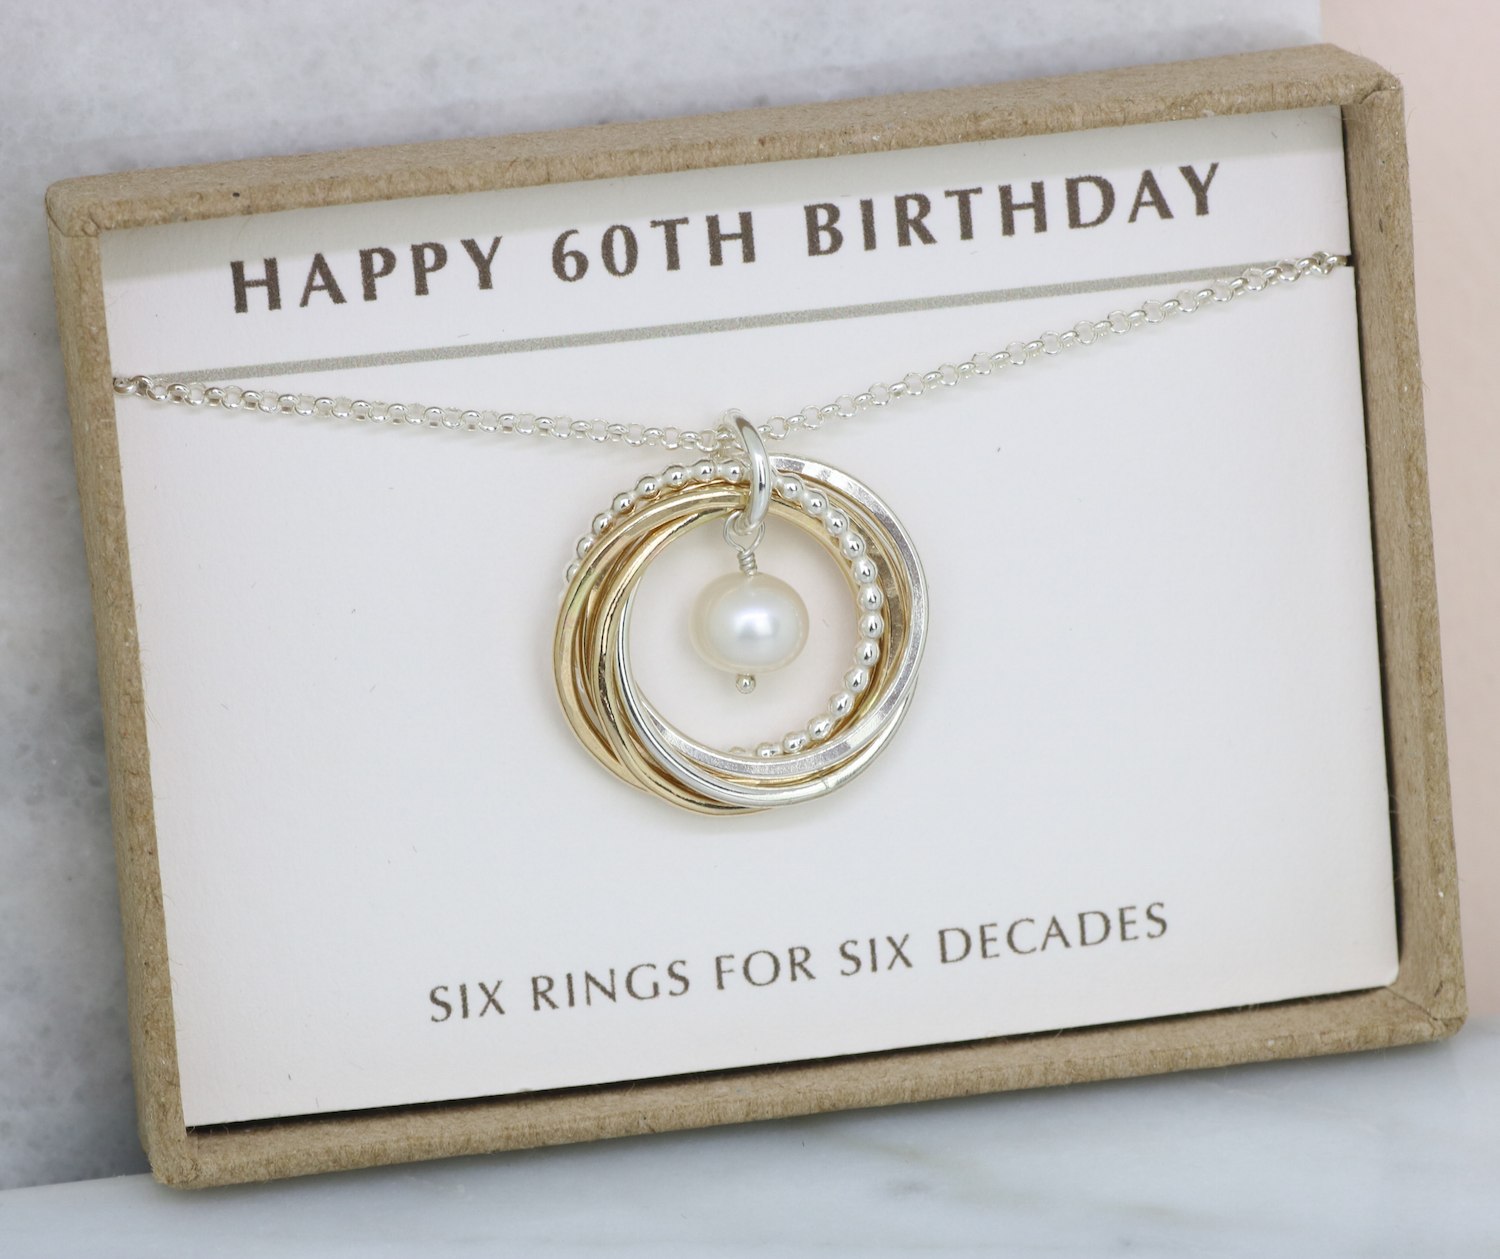 Quotes 60Th Birthday 60Th Birthday Gift Idea June Birthday Gift Pearl Necklace For